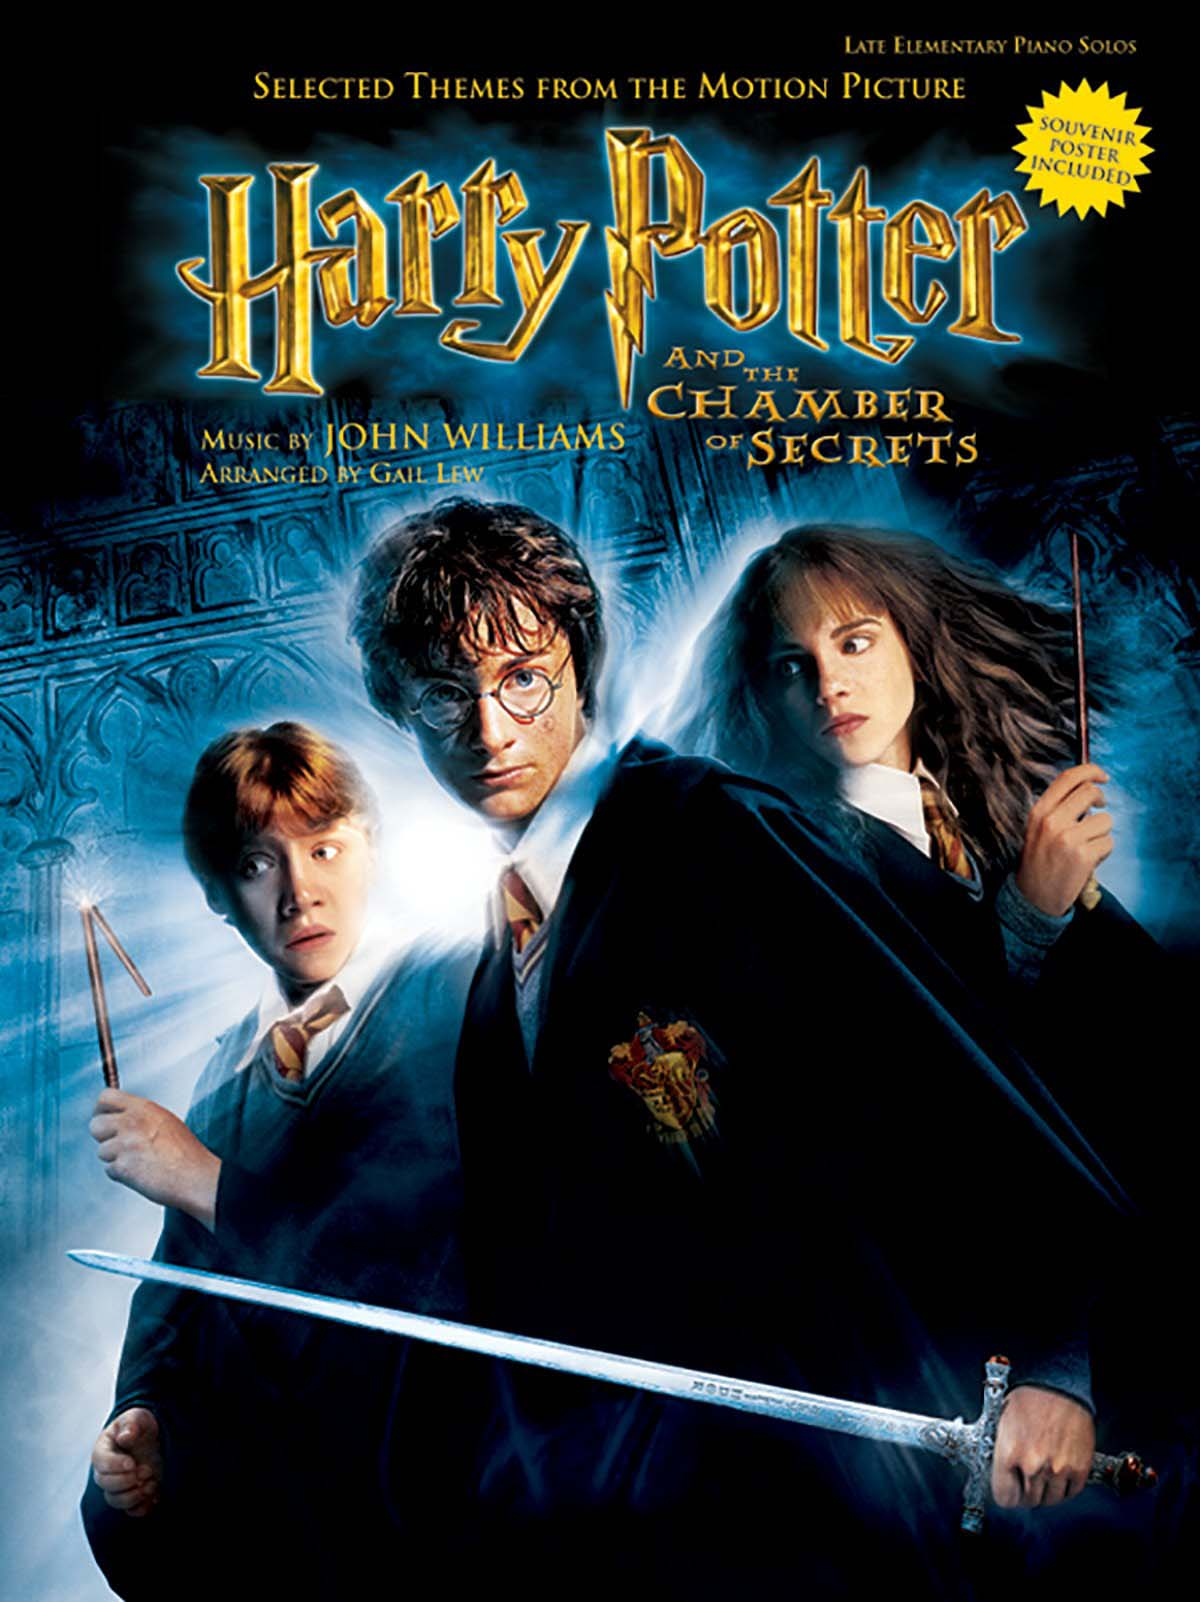 «Harry Potter and the Chamber of Secrets» Sheet Music, 38 pages, PDF